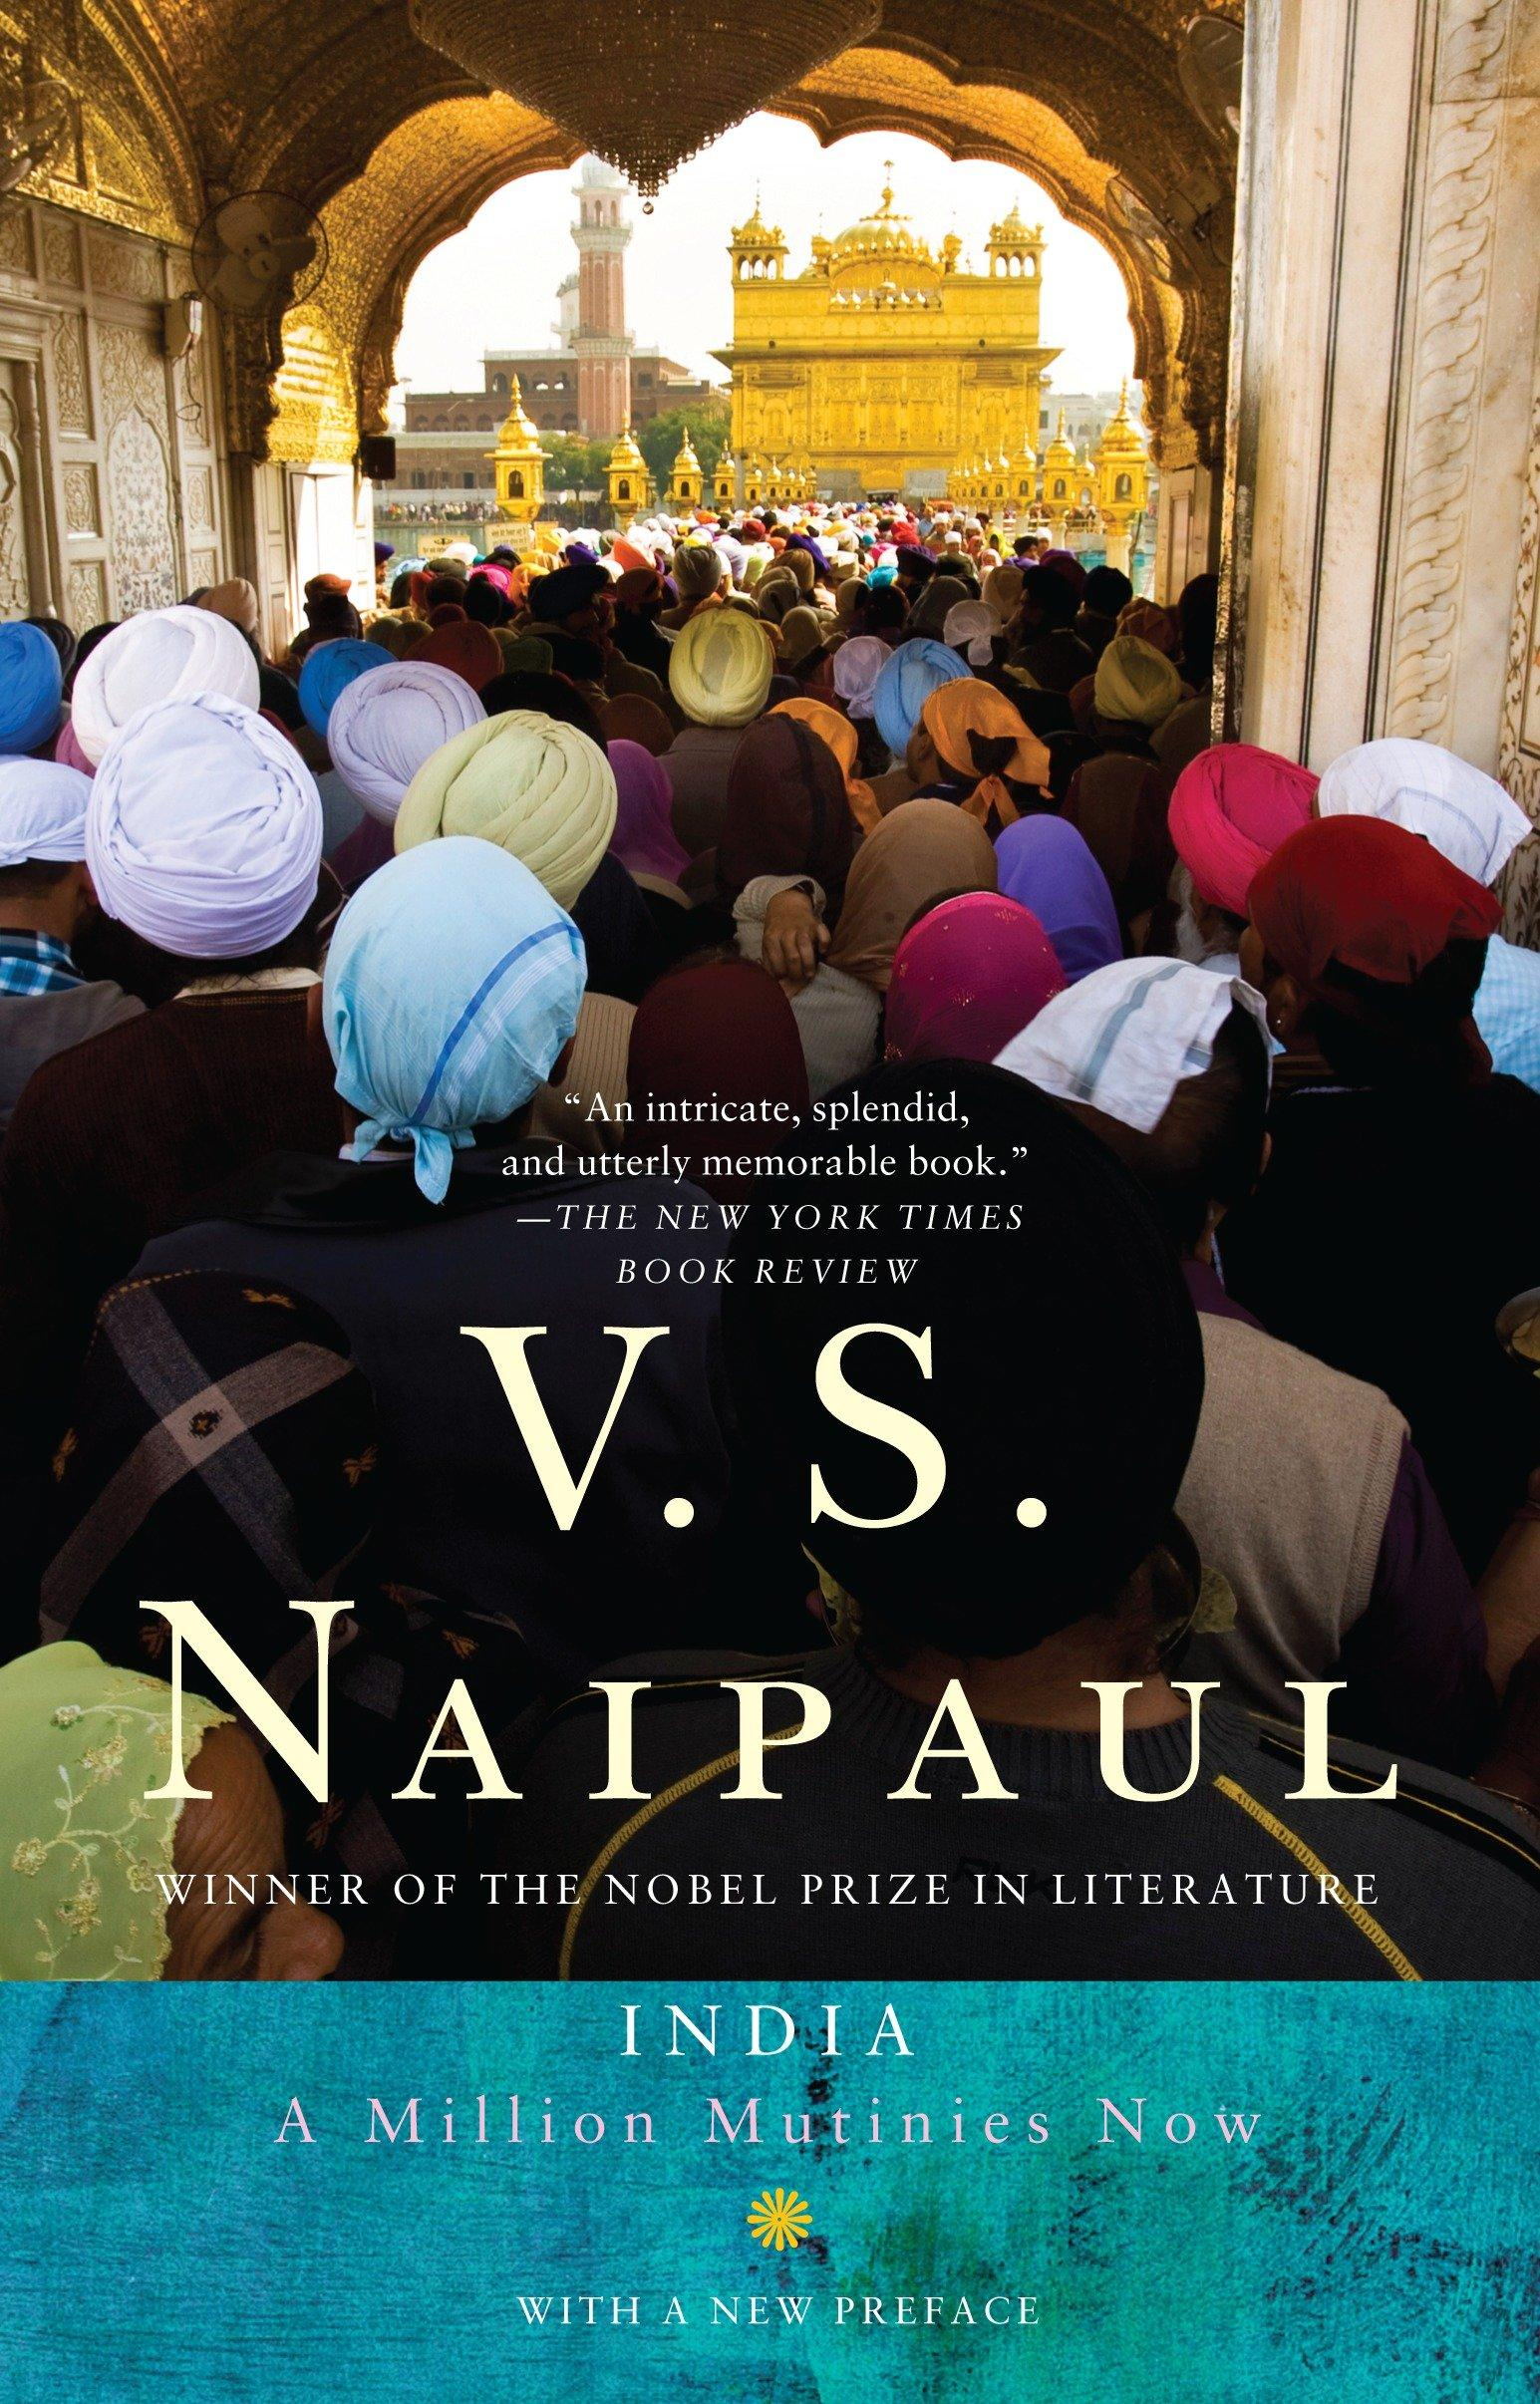 India: A Million Mutinies Now  V. S. Naipaul  Taschenbuch  Englisch  2011 - Naipaul, V. S.